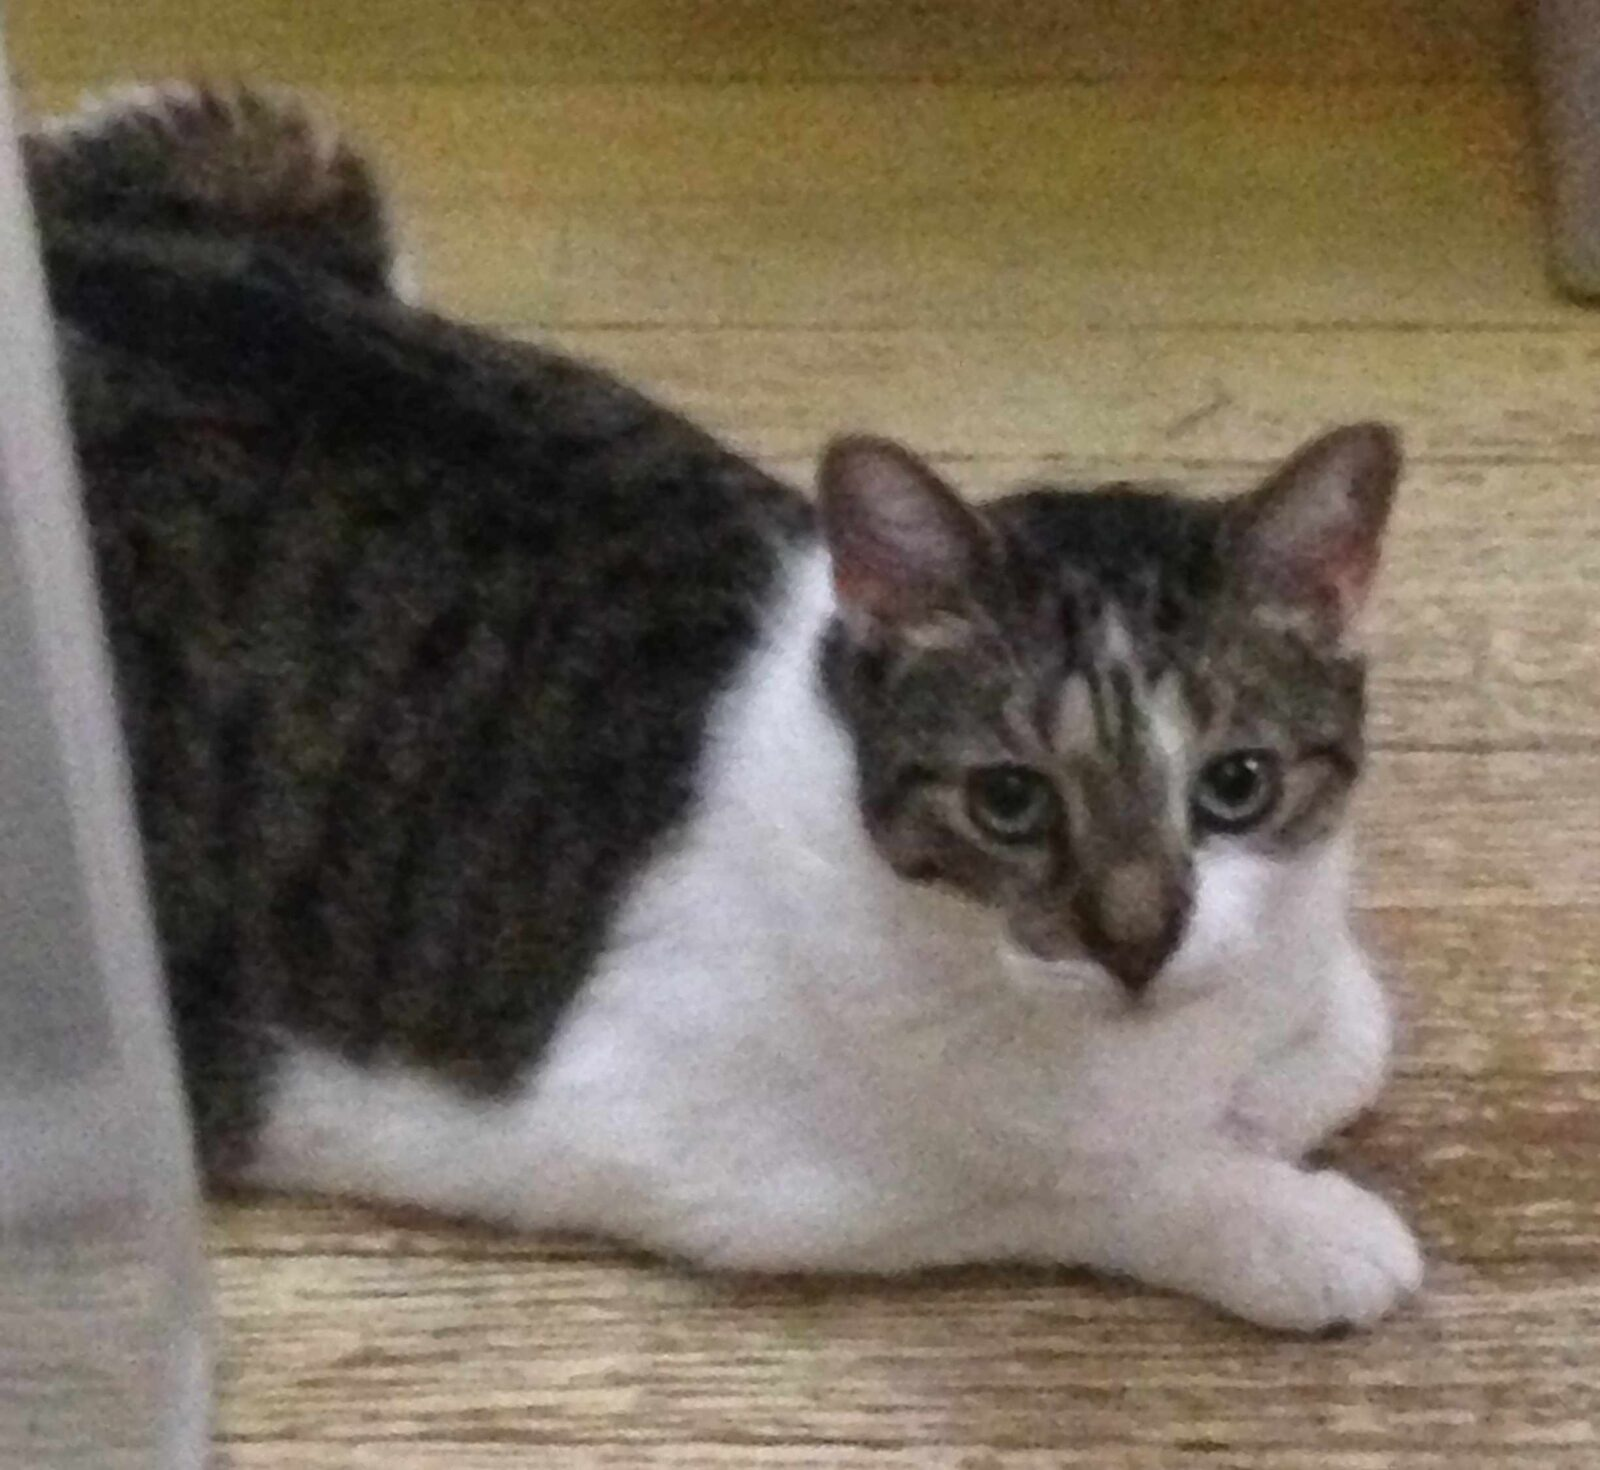 Lincoln the cat posing ready for adoption at Place for Cats